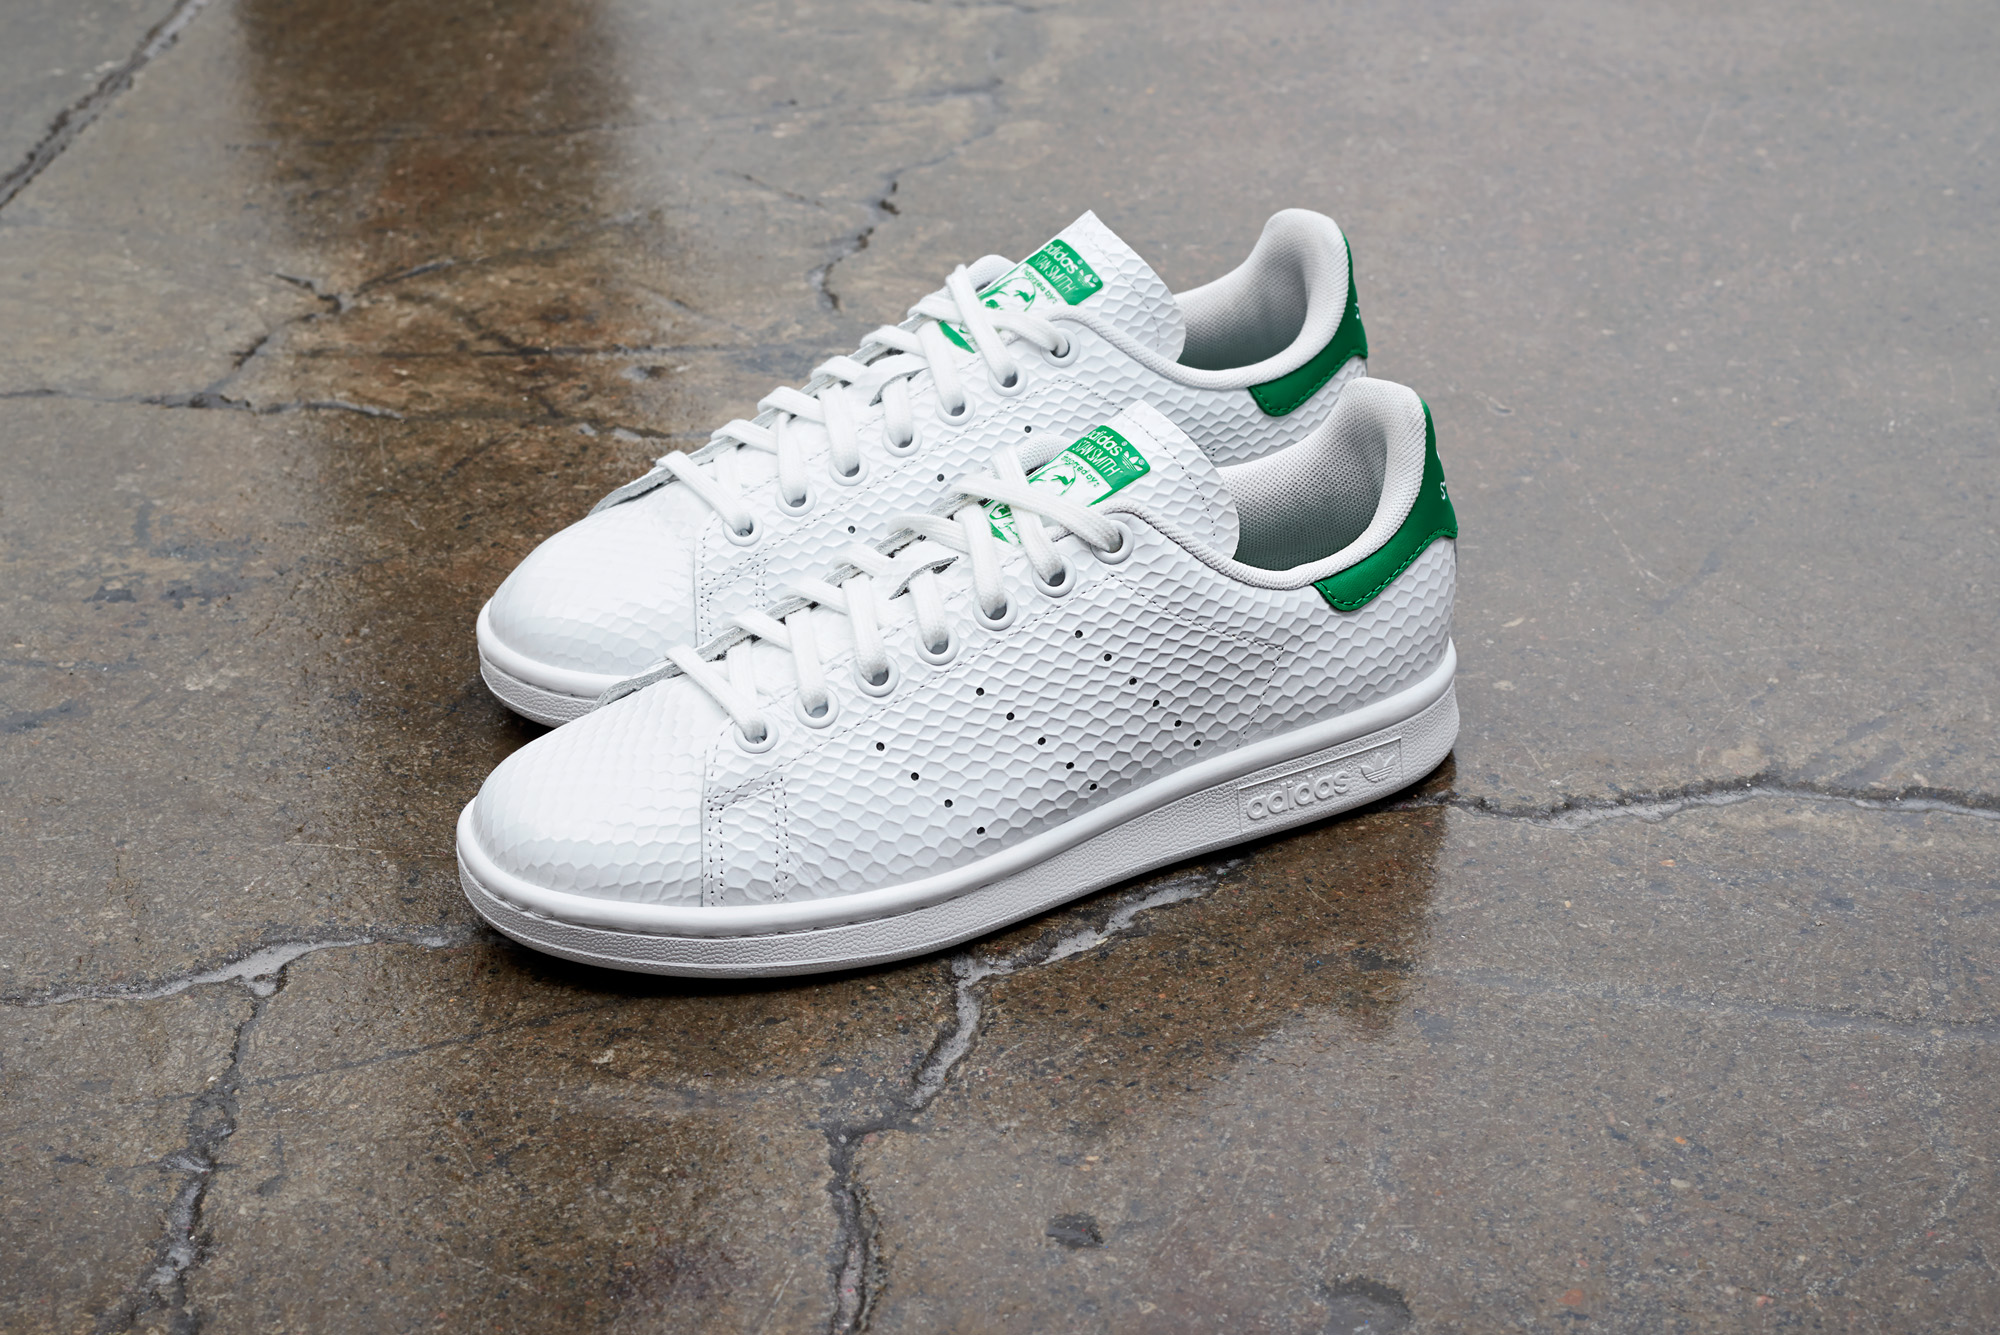 cheaper buying now great deals 2017 stan smith adidas decathlon